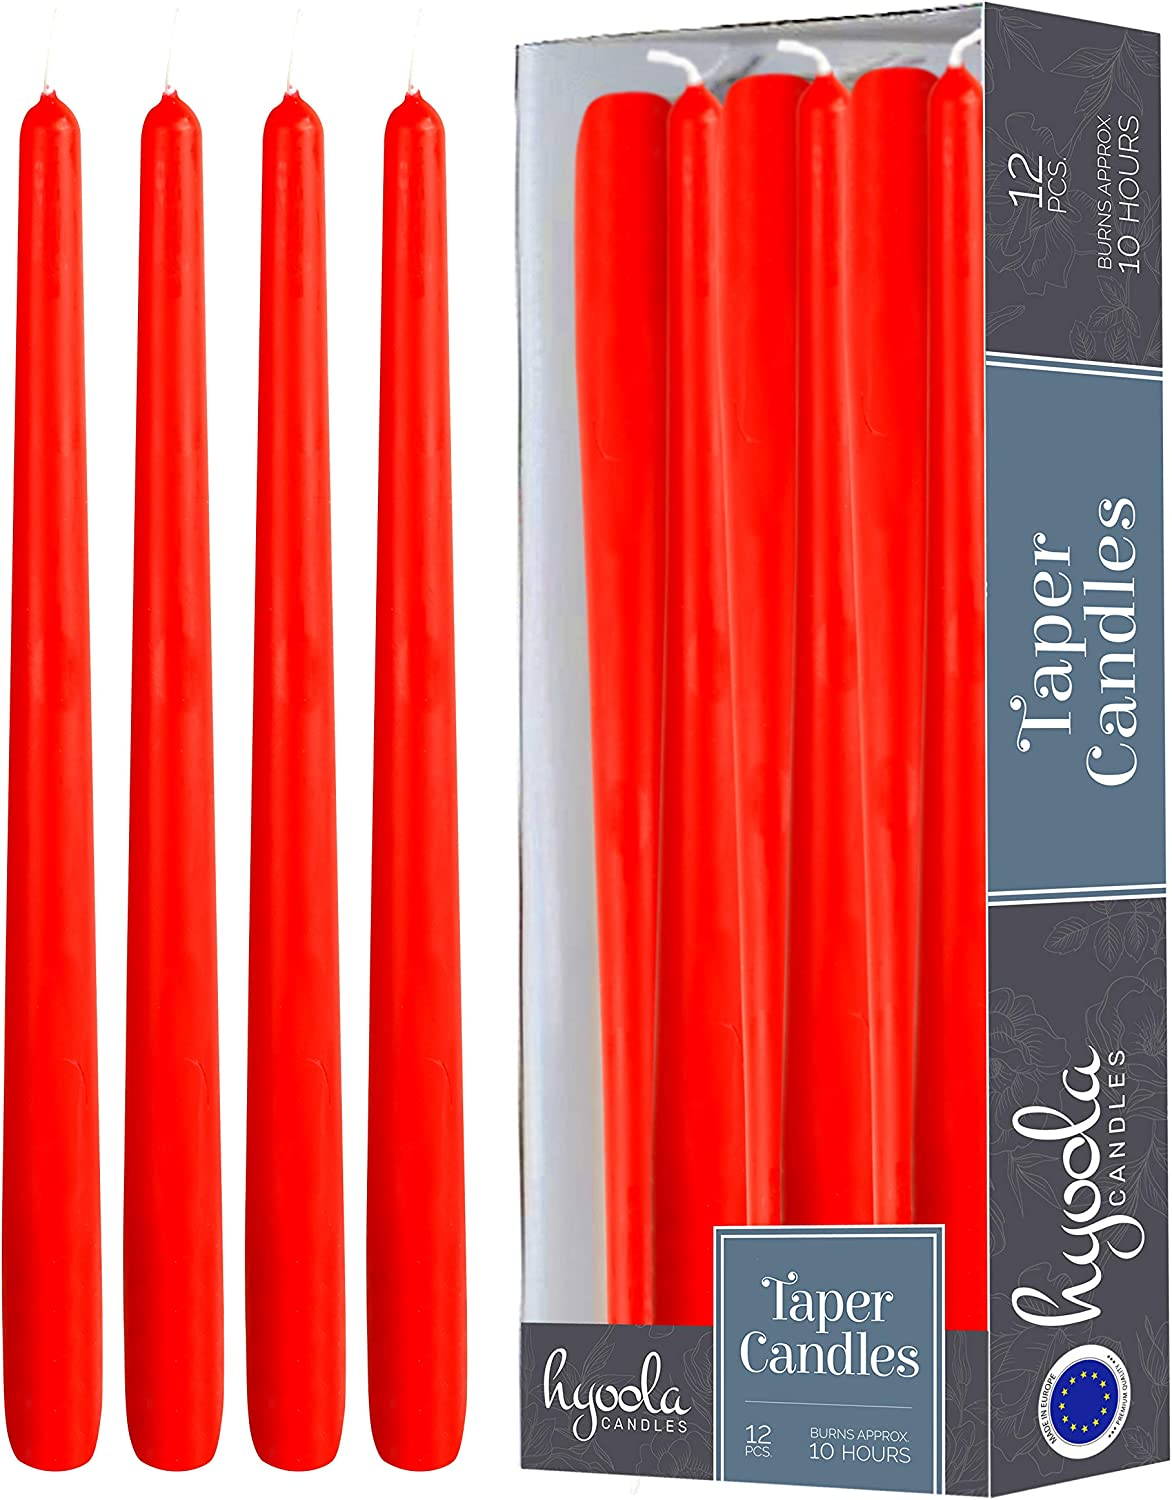 Hyoola 12 Pack Red Tall Taper Candles - 12 Inch Red Dripless, Unscented Dinner Candle - Paraffin Wax with Cotton Wicks - 10 Hour Burn Time.